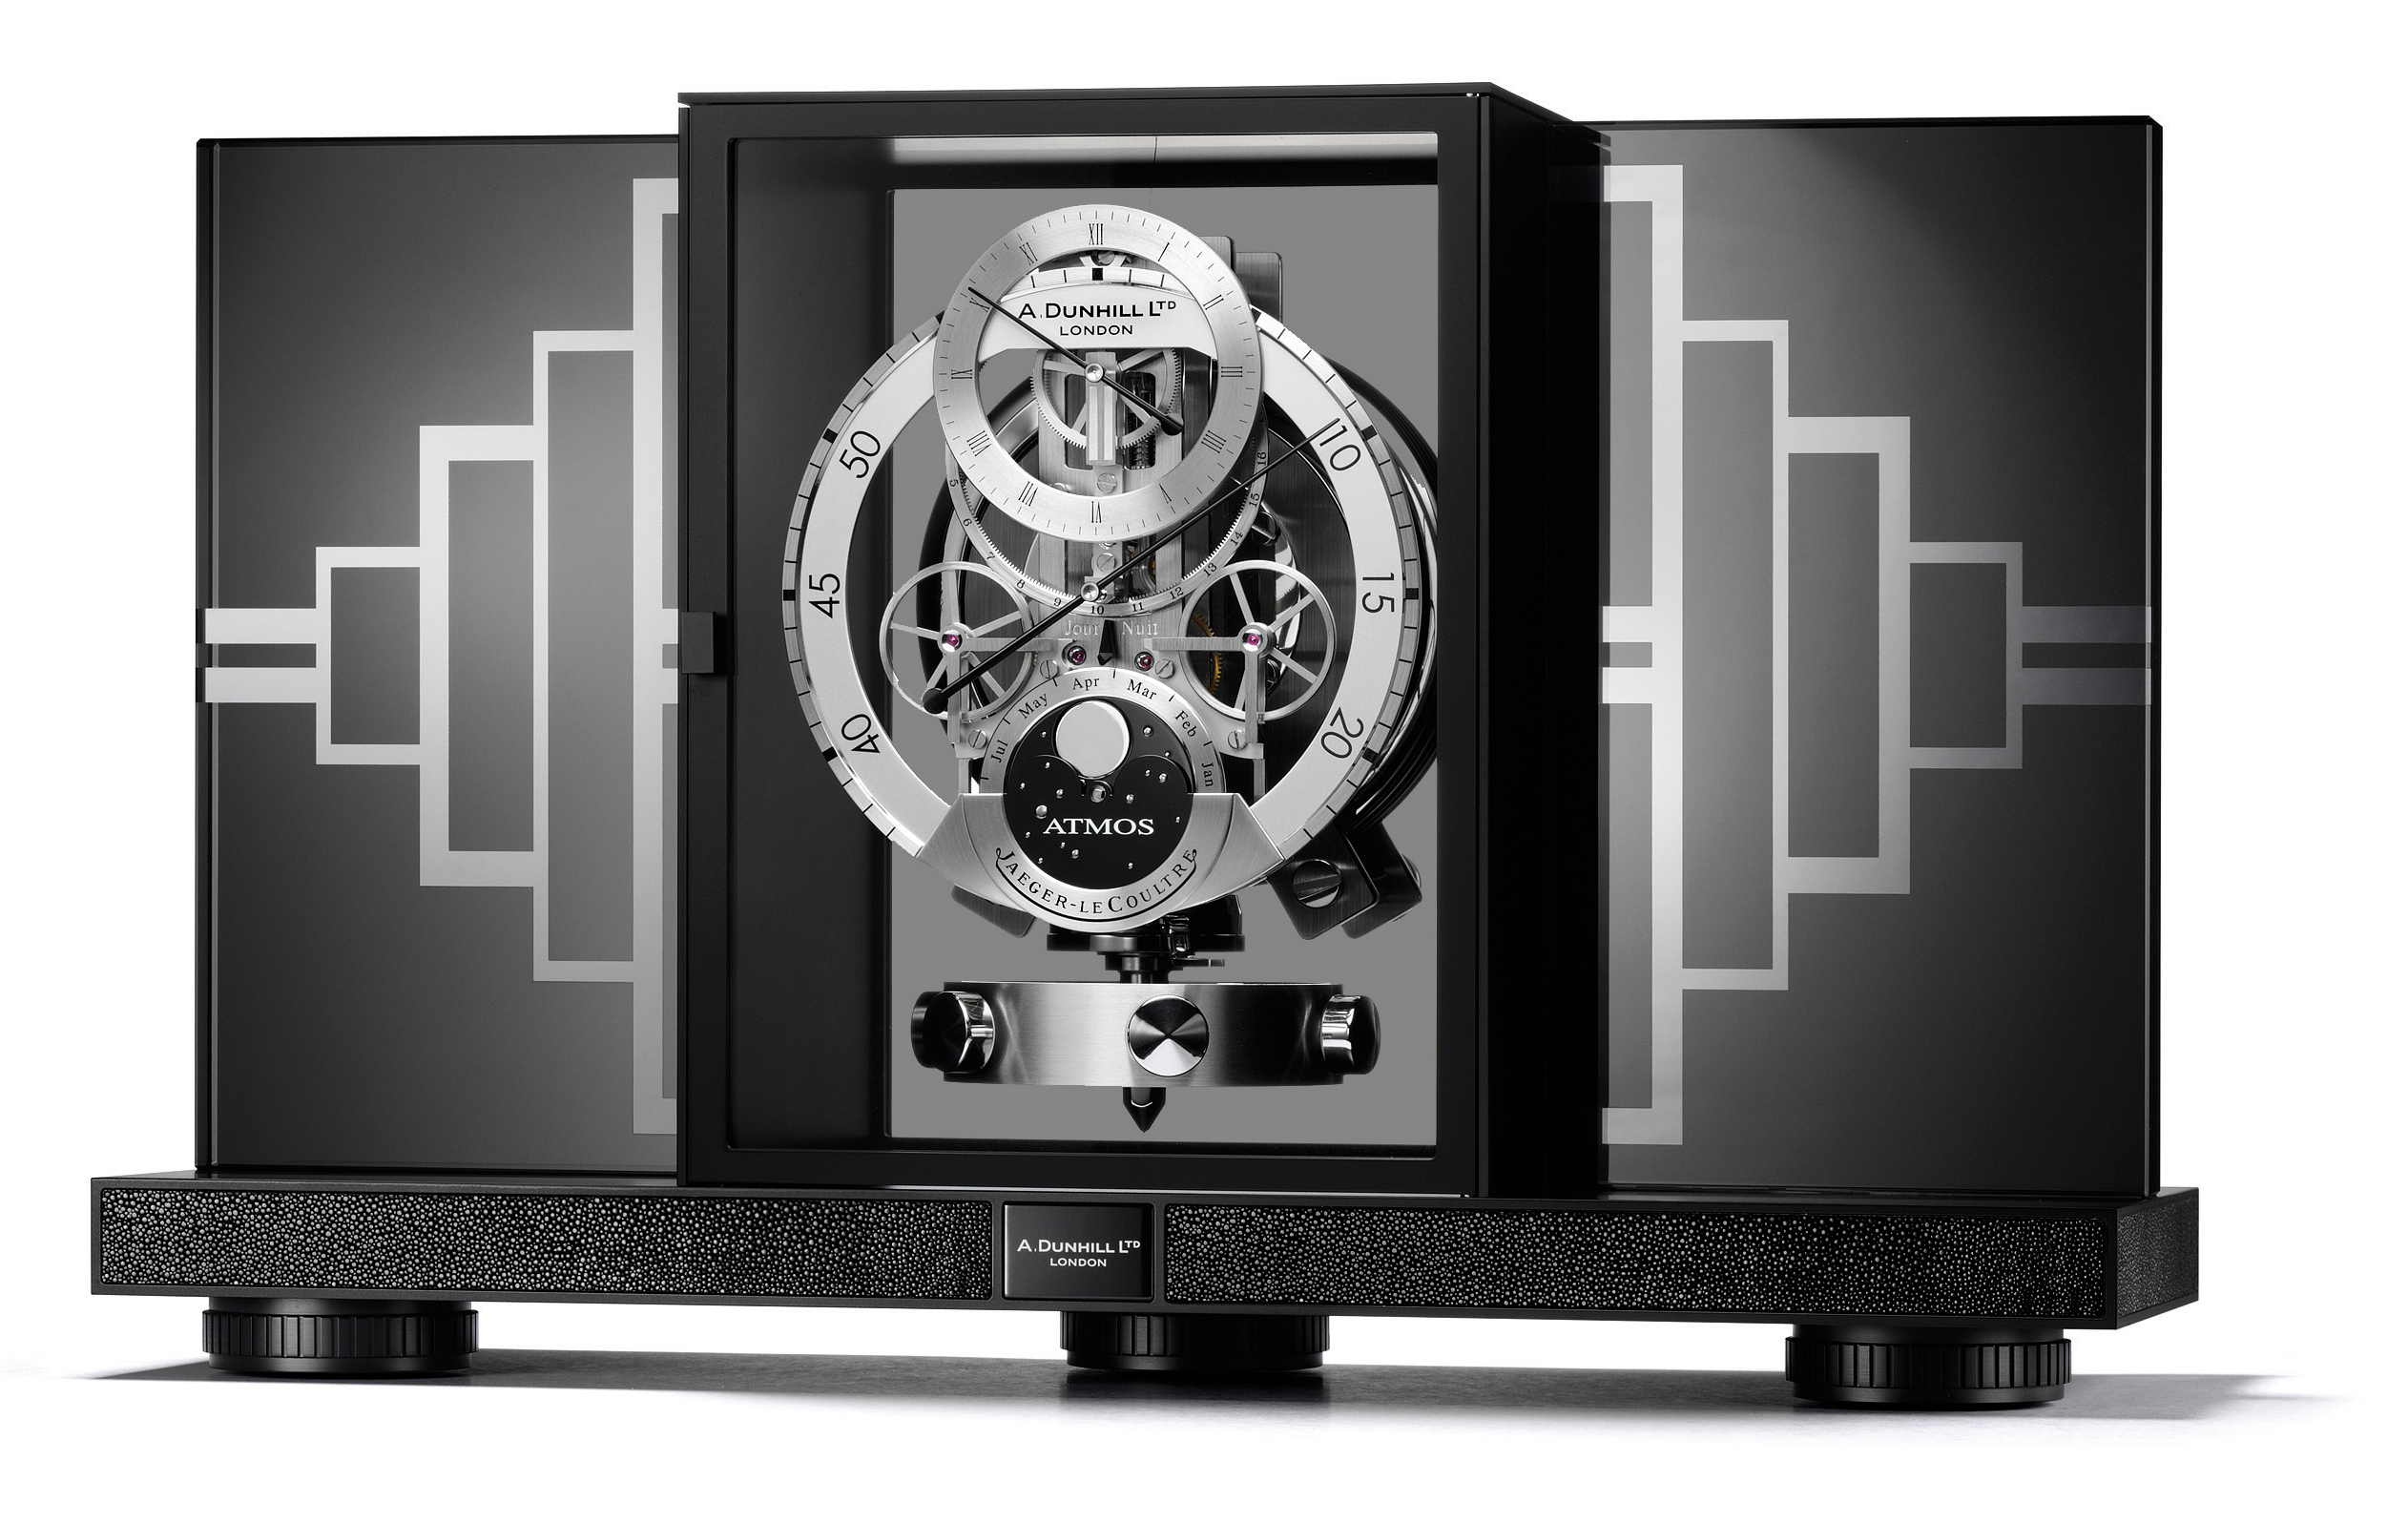 Jlc Atmos Regulator For Alfred Dunhill